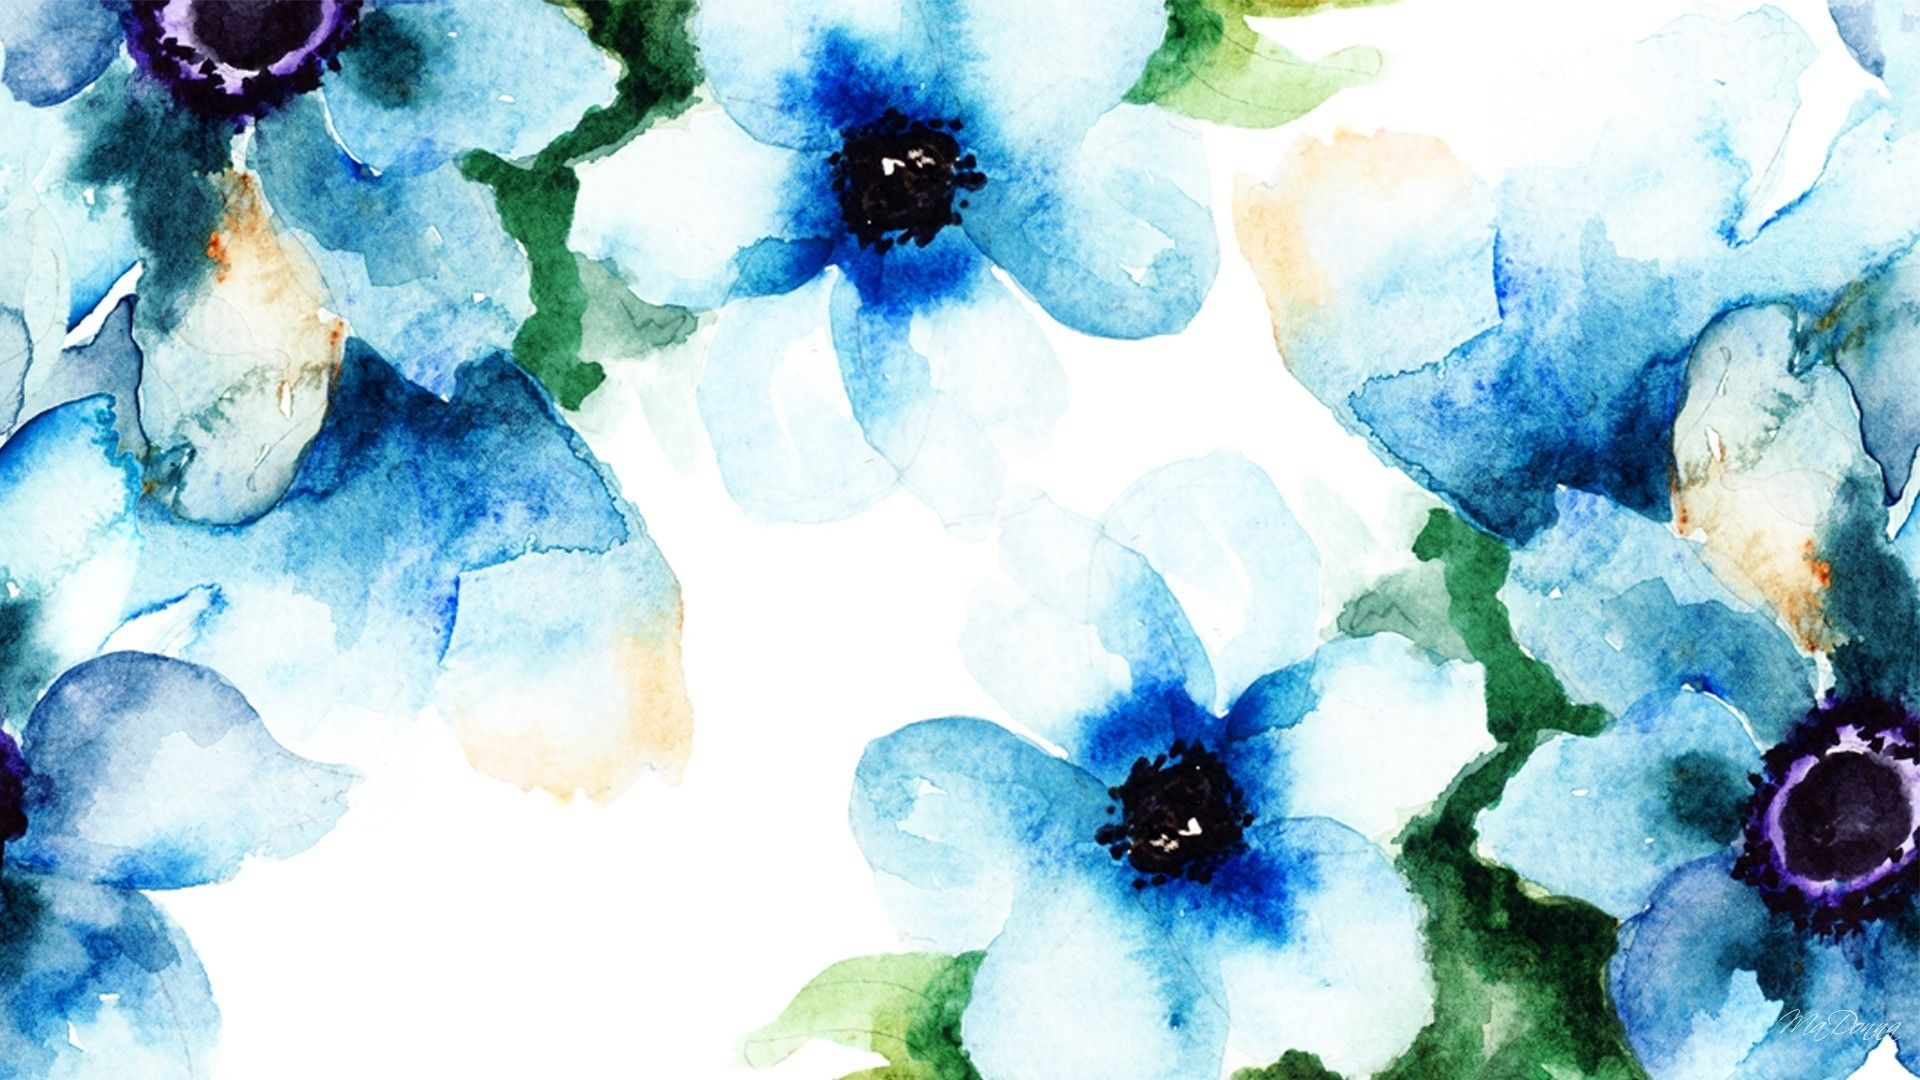 1920x1080 30 Free Beautiful Watercolor Wallpapers That Should Be On Your Desktop Watercolor Desktop Wallpaper Ipad Wallpaper Watercolor Watercolor Wallpaper